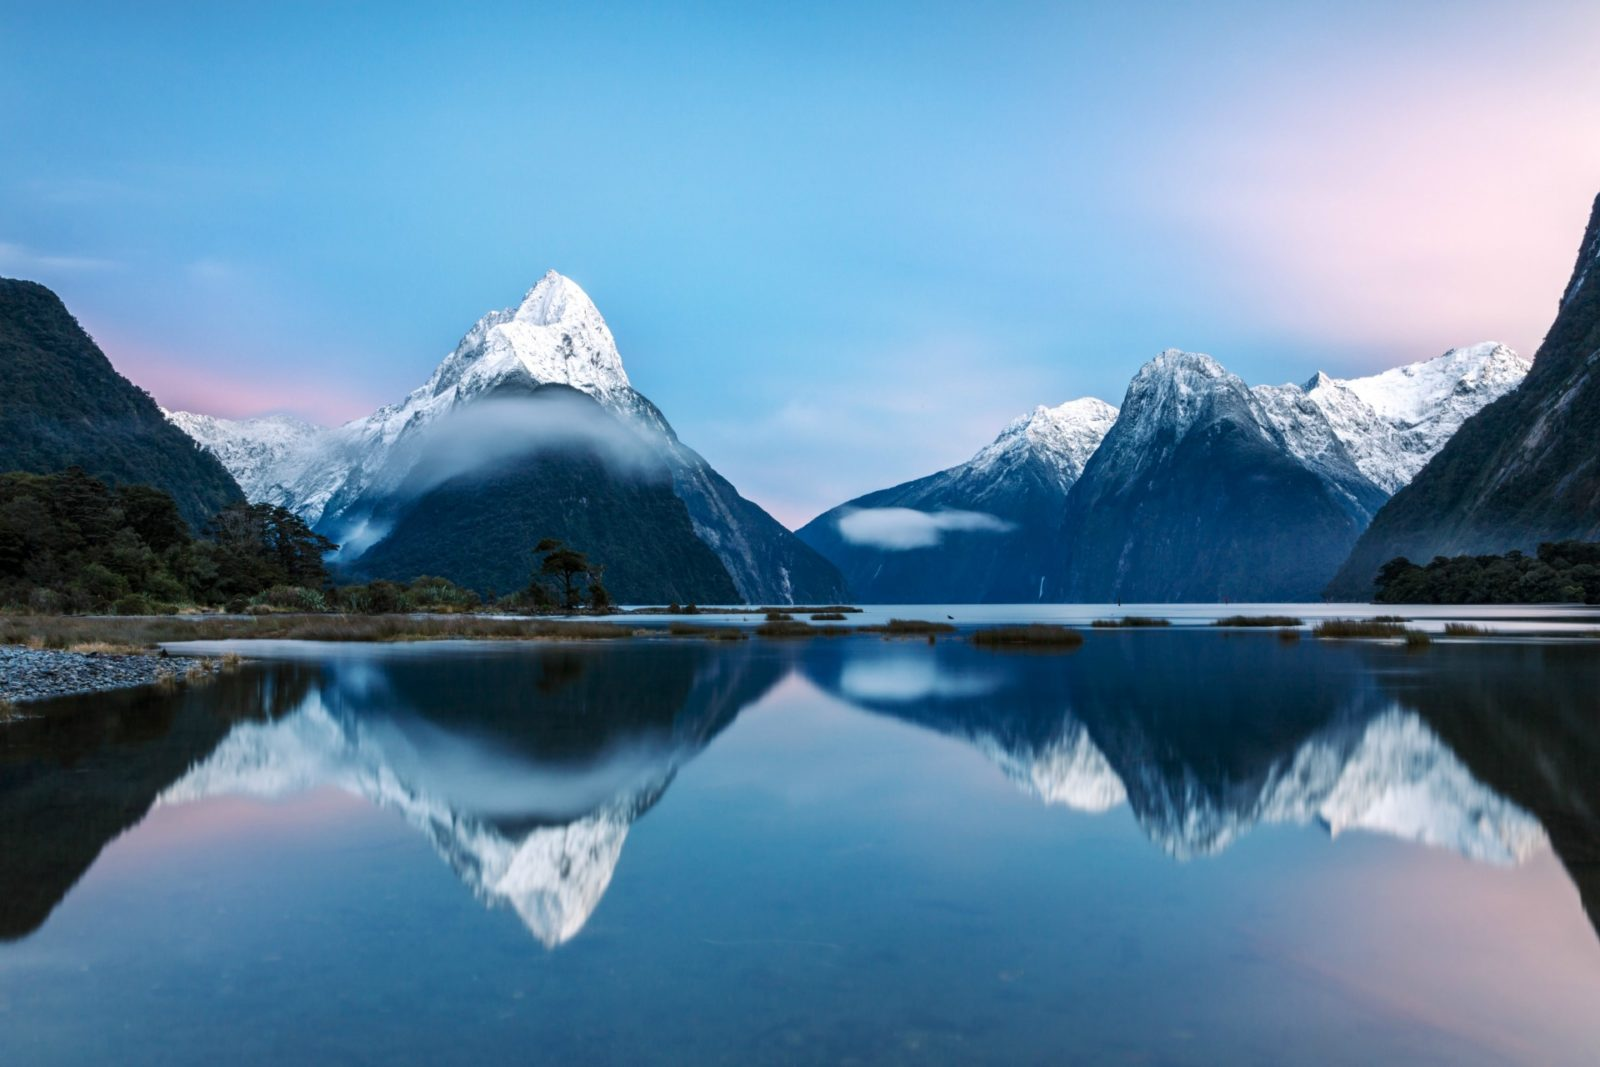 Fiordland National Park is one of the incredible destinations cruise-goers get to see. Source: Getty